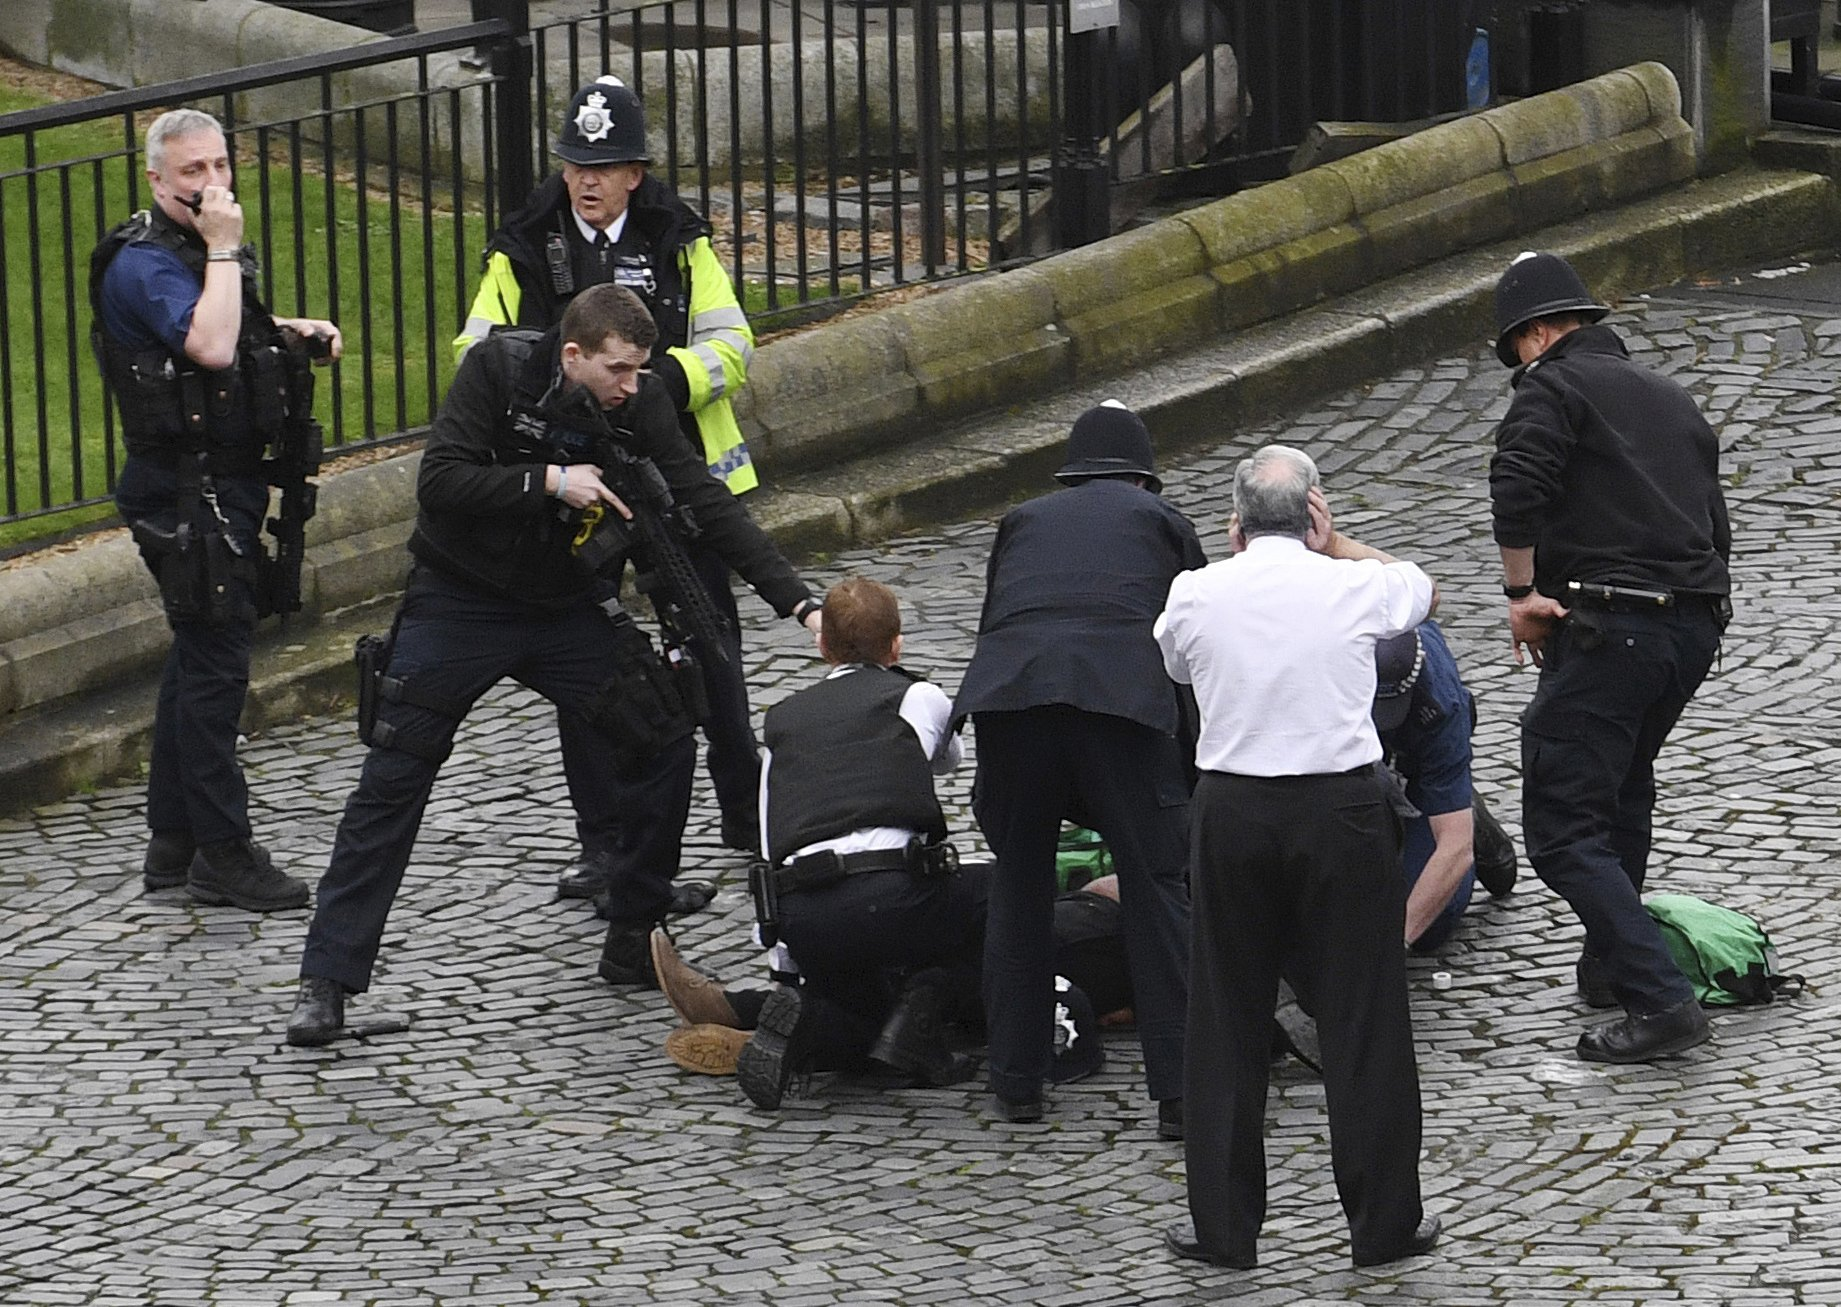 A policeman points a gun at a man on the floor as emergency services attend the scene outside the Palace of Westminster, on March 22, 2017.